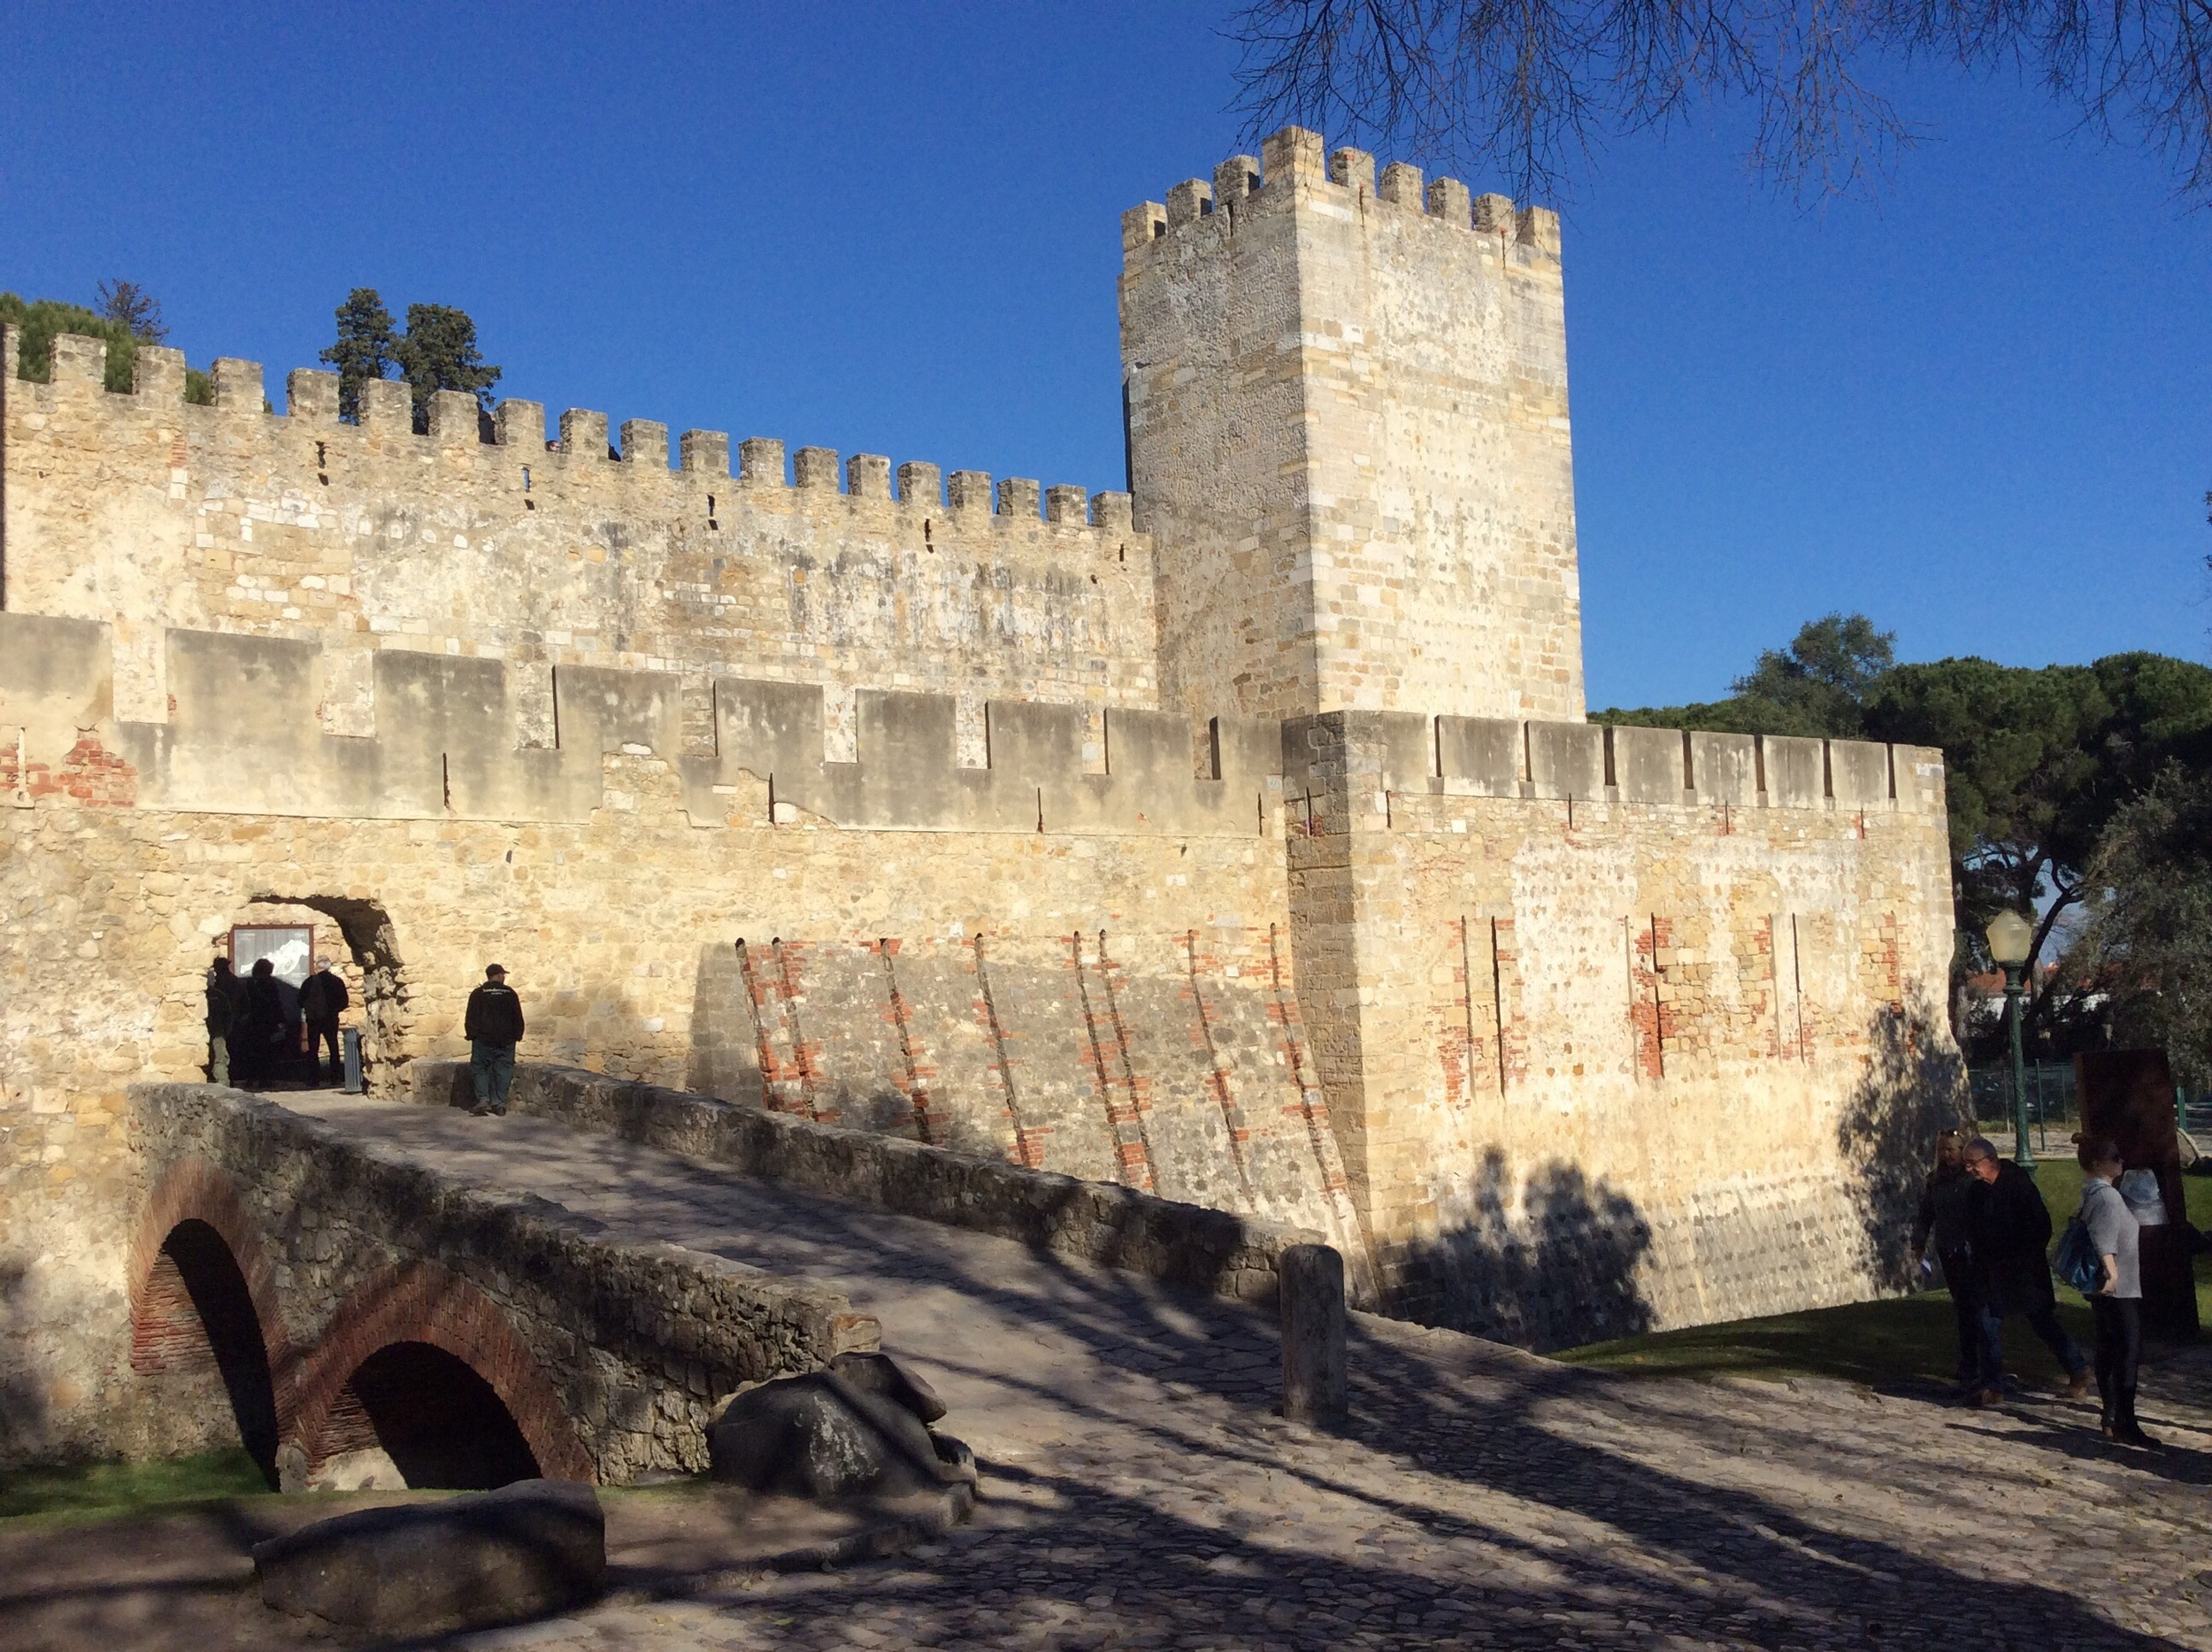 Another beautiful January day in Lisbon